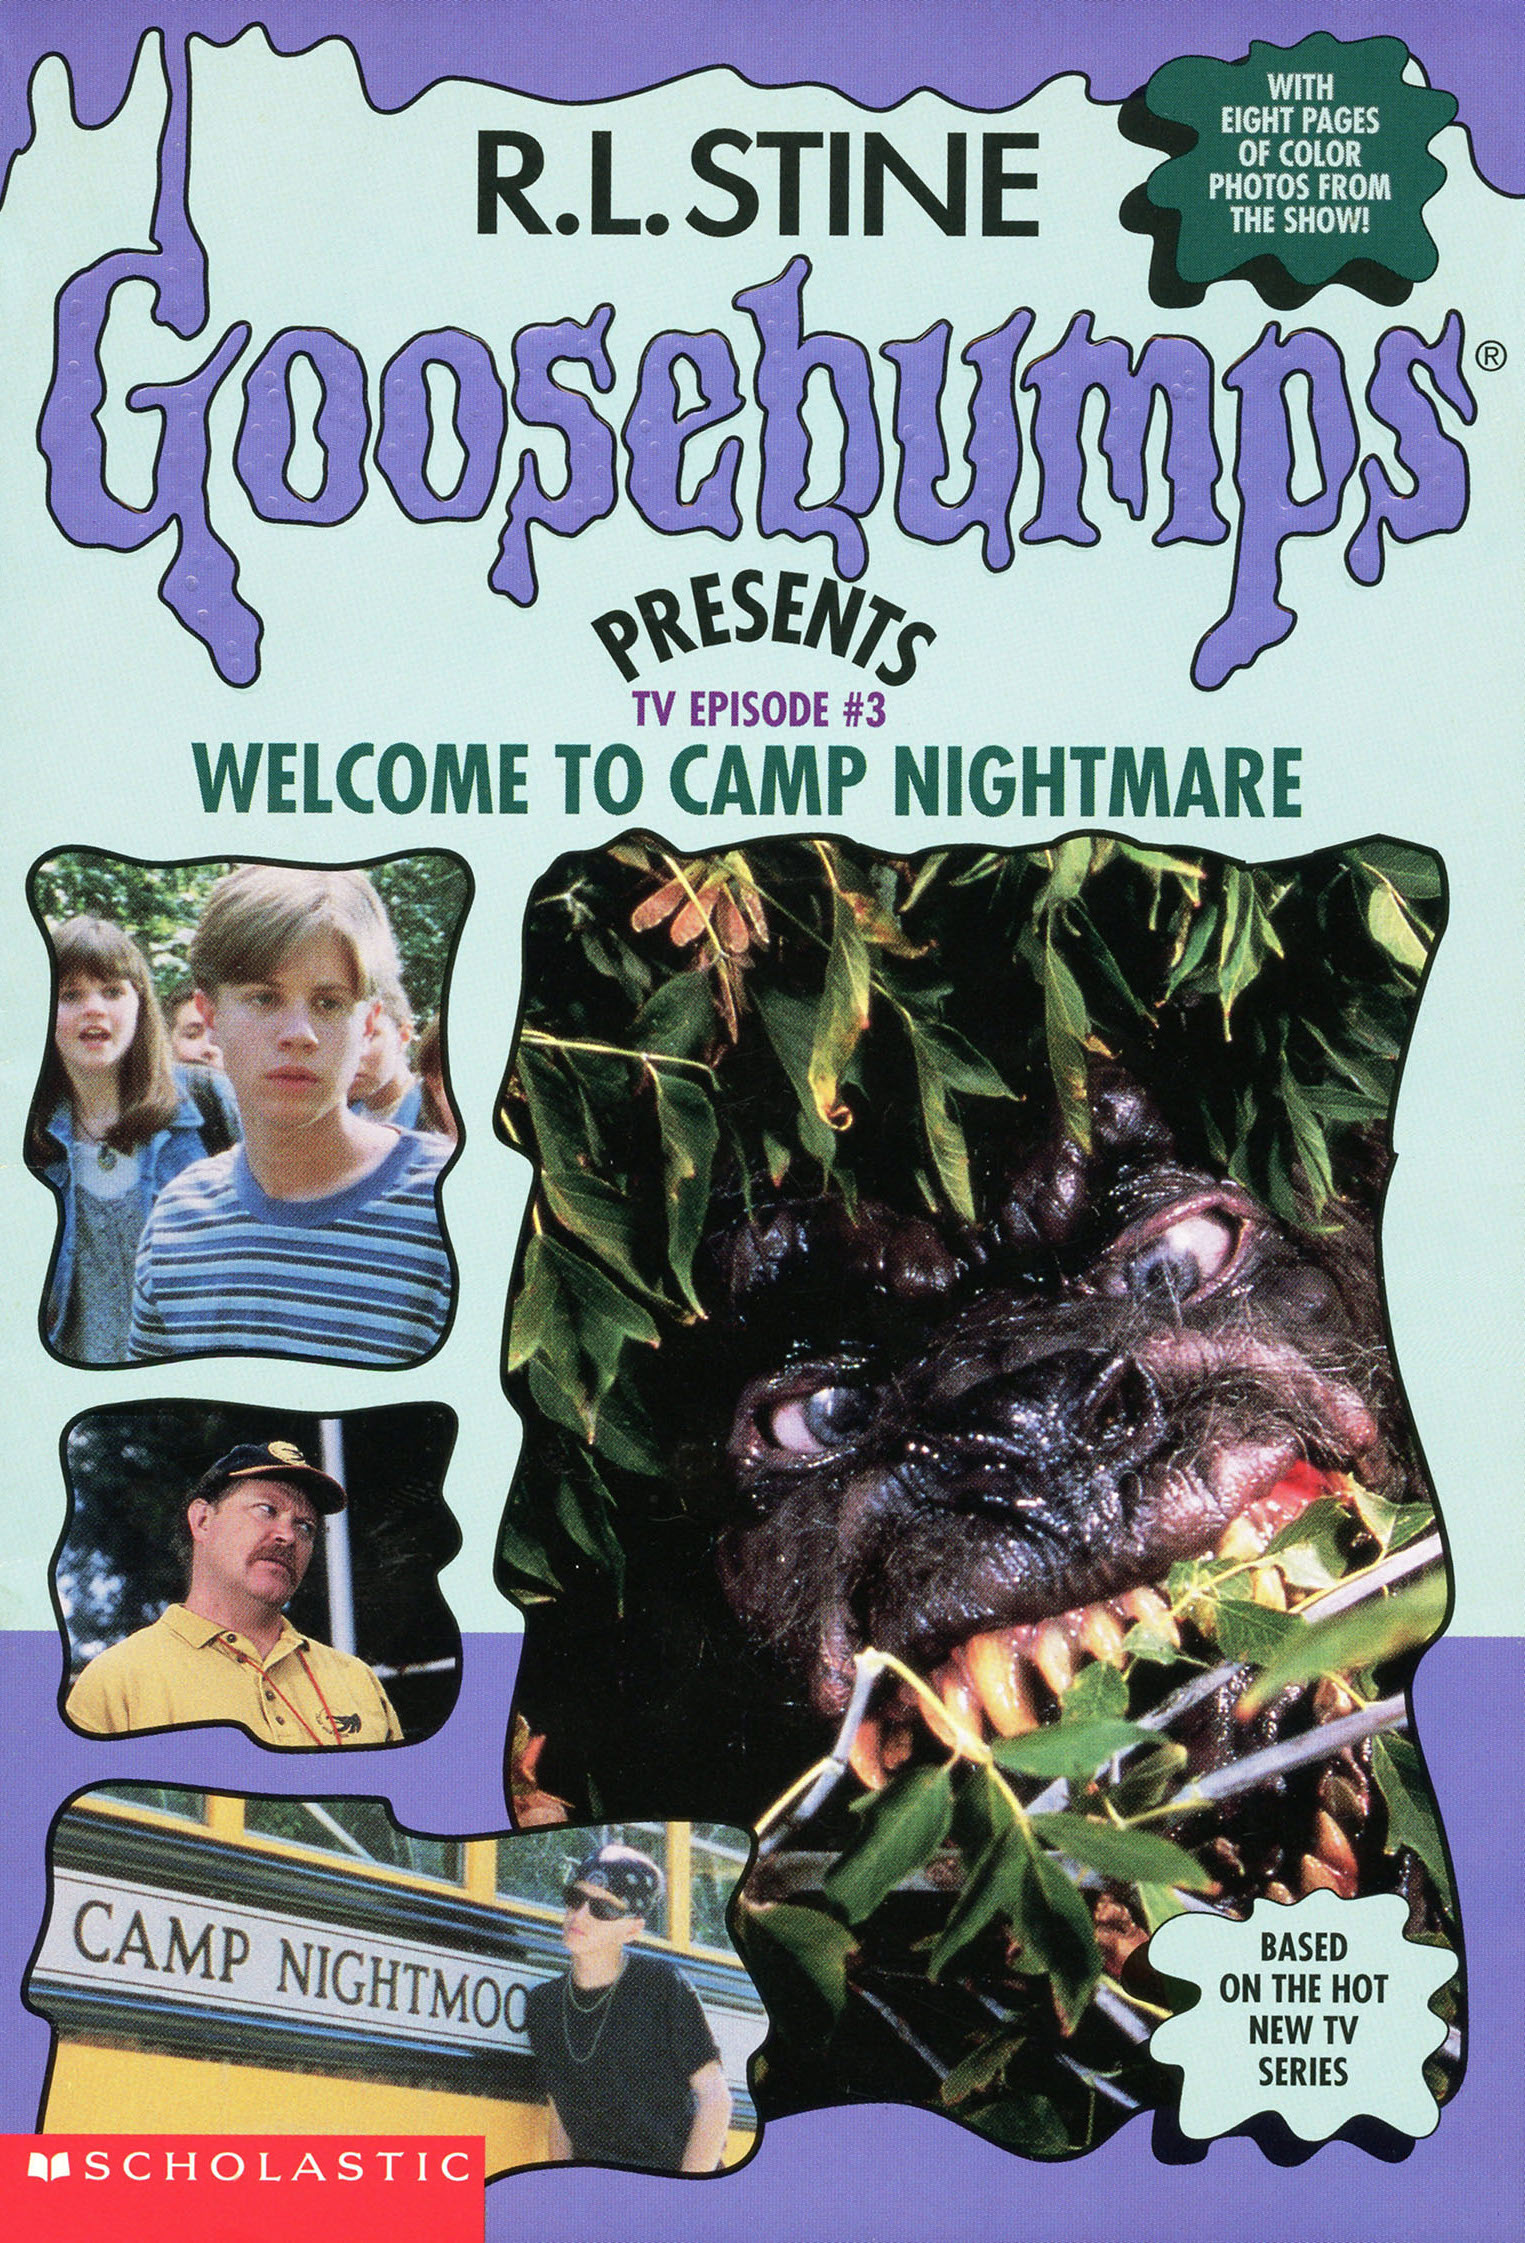 Goosebumps Book Cover Template : Goosebumps presents wiki fandom powered by